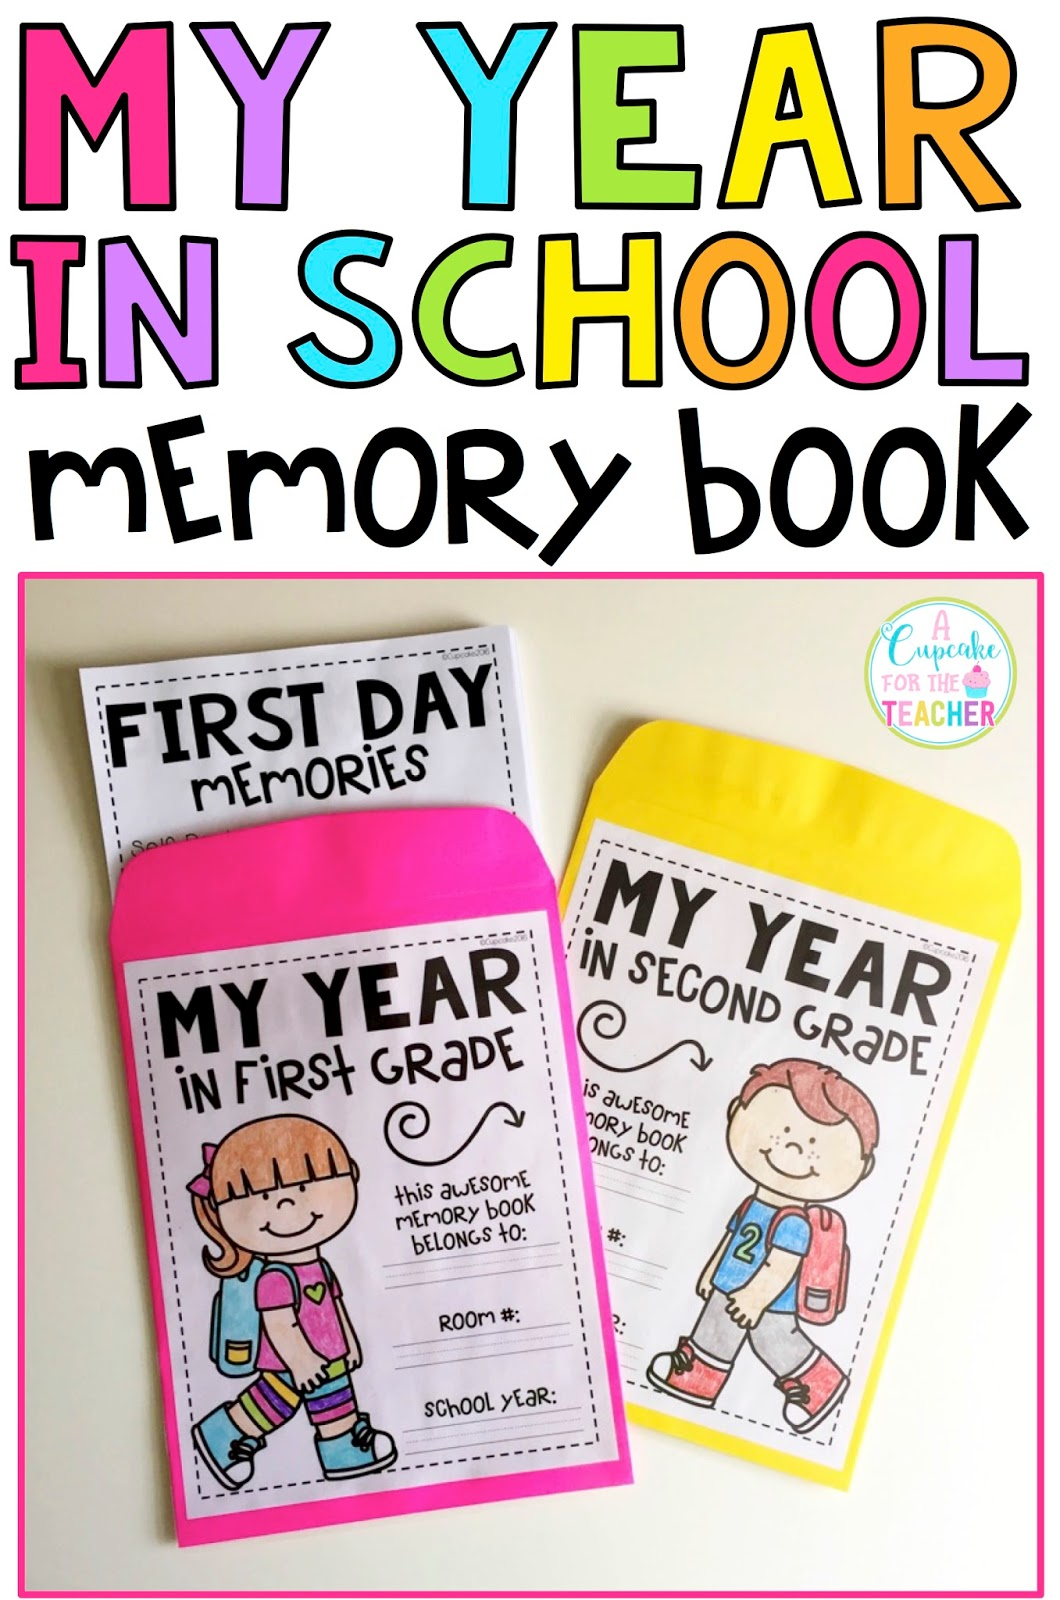 Book Cover School Quotes ~ My year in school memory book a cupcake for the teacher